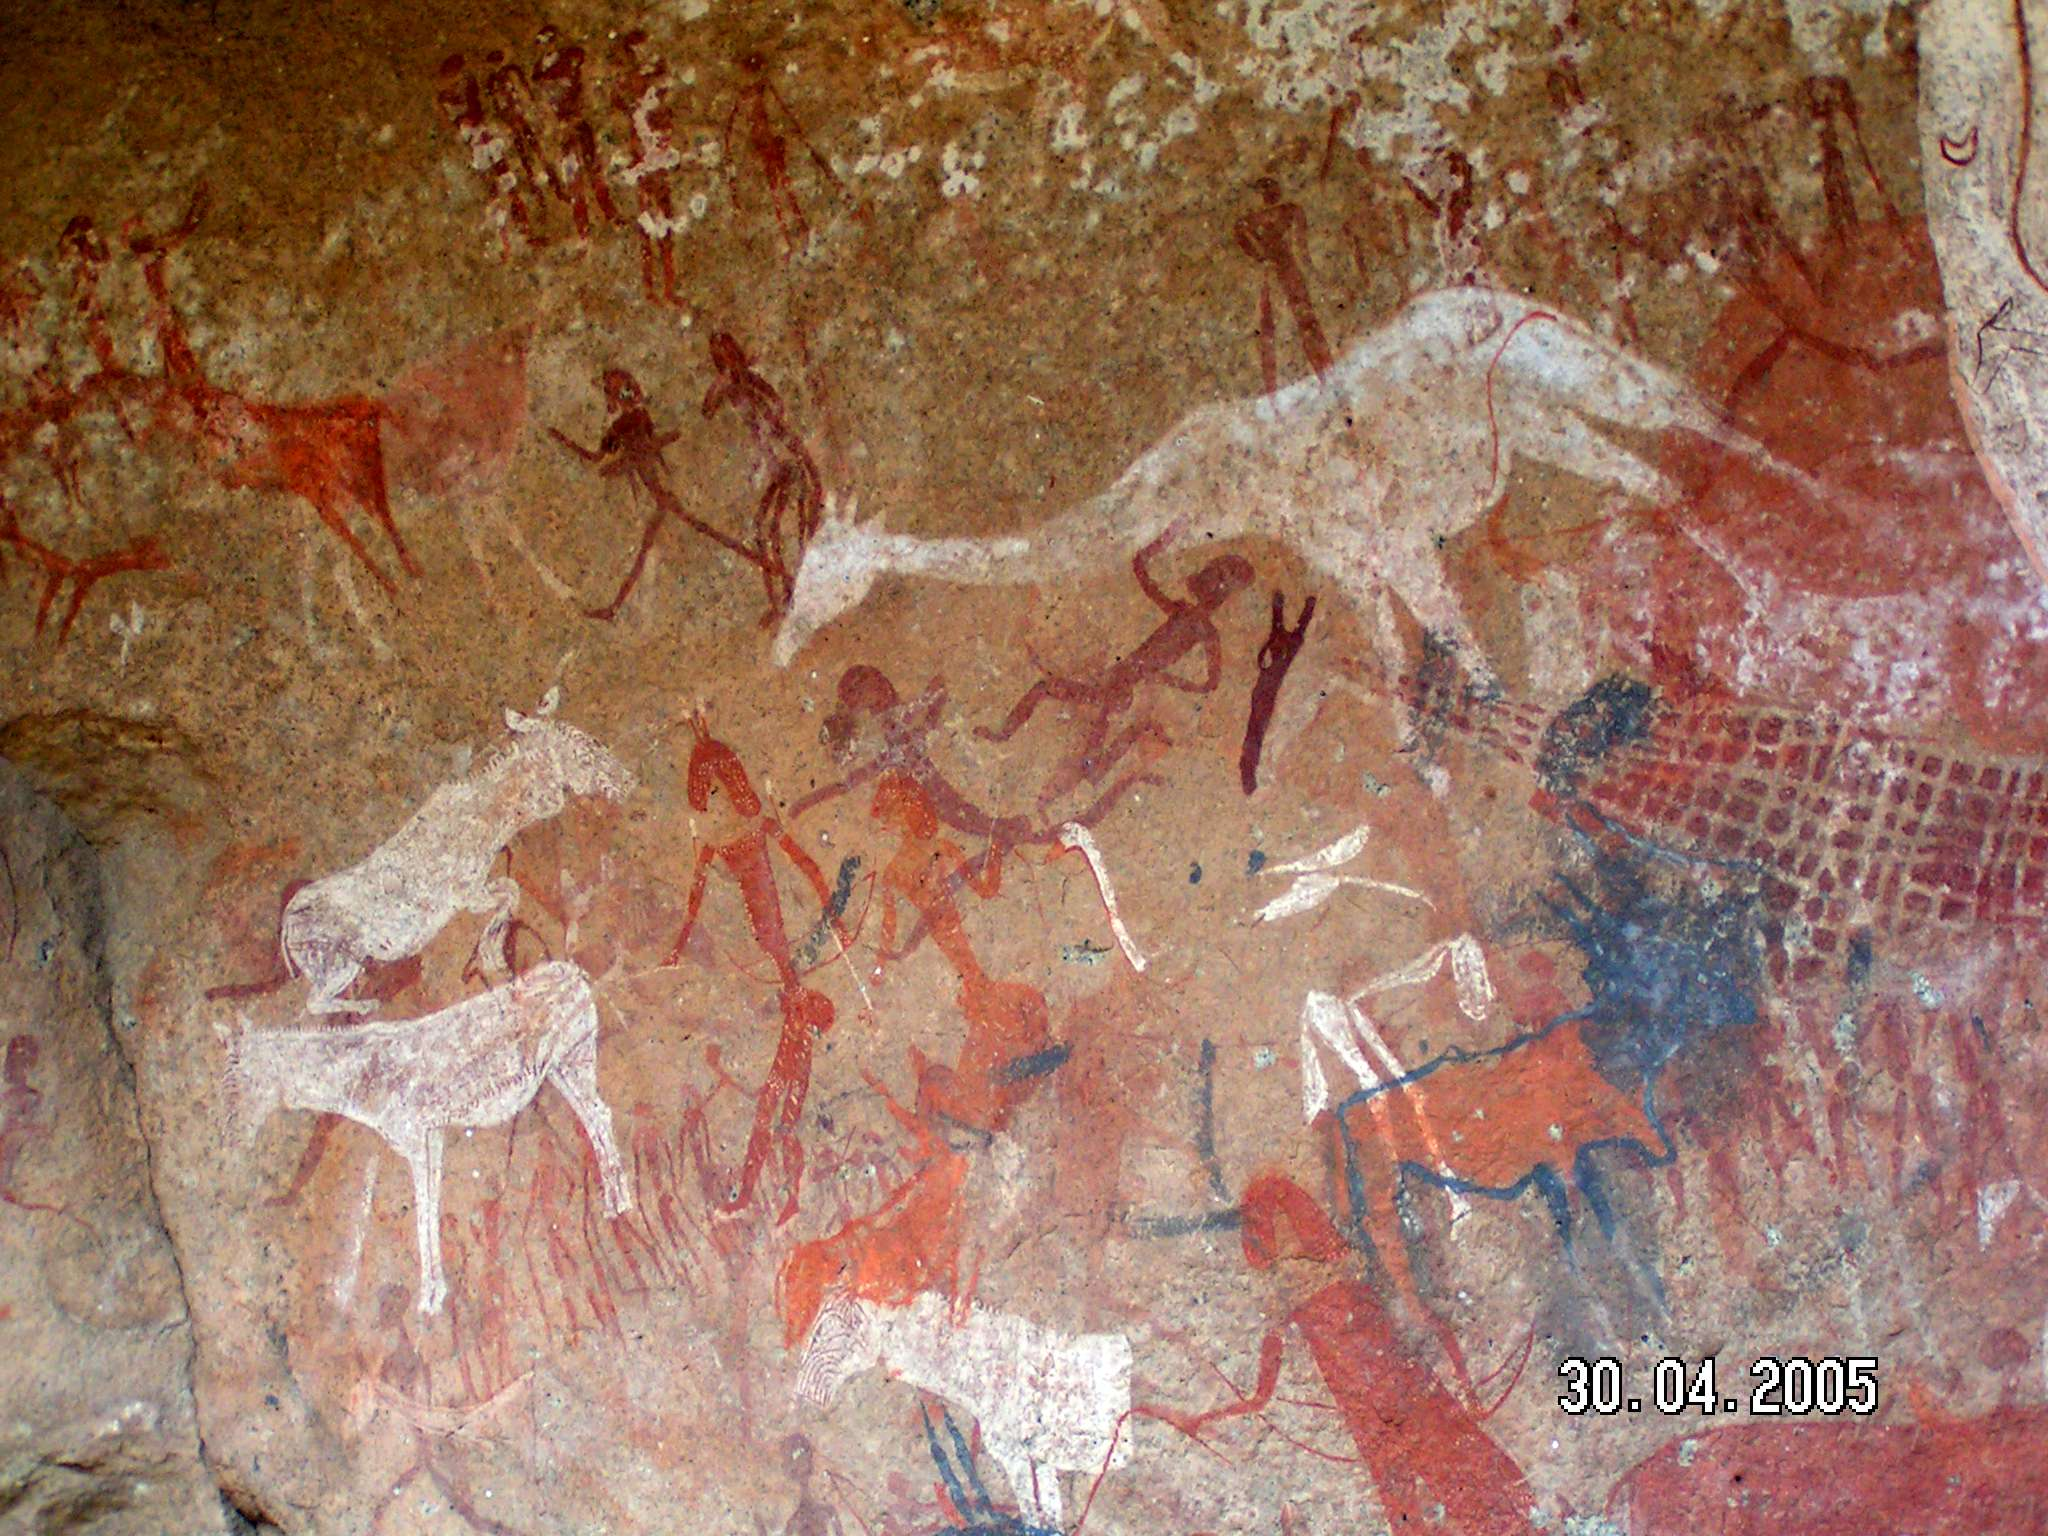 Namibia Rock Paintings From Namibia In Africa